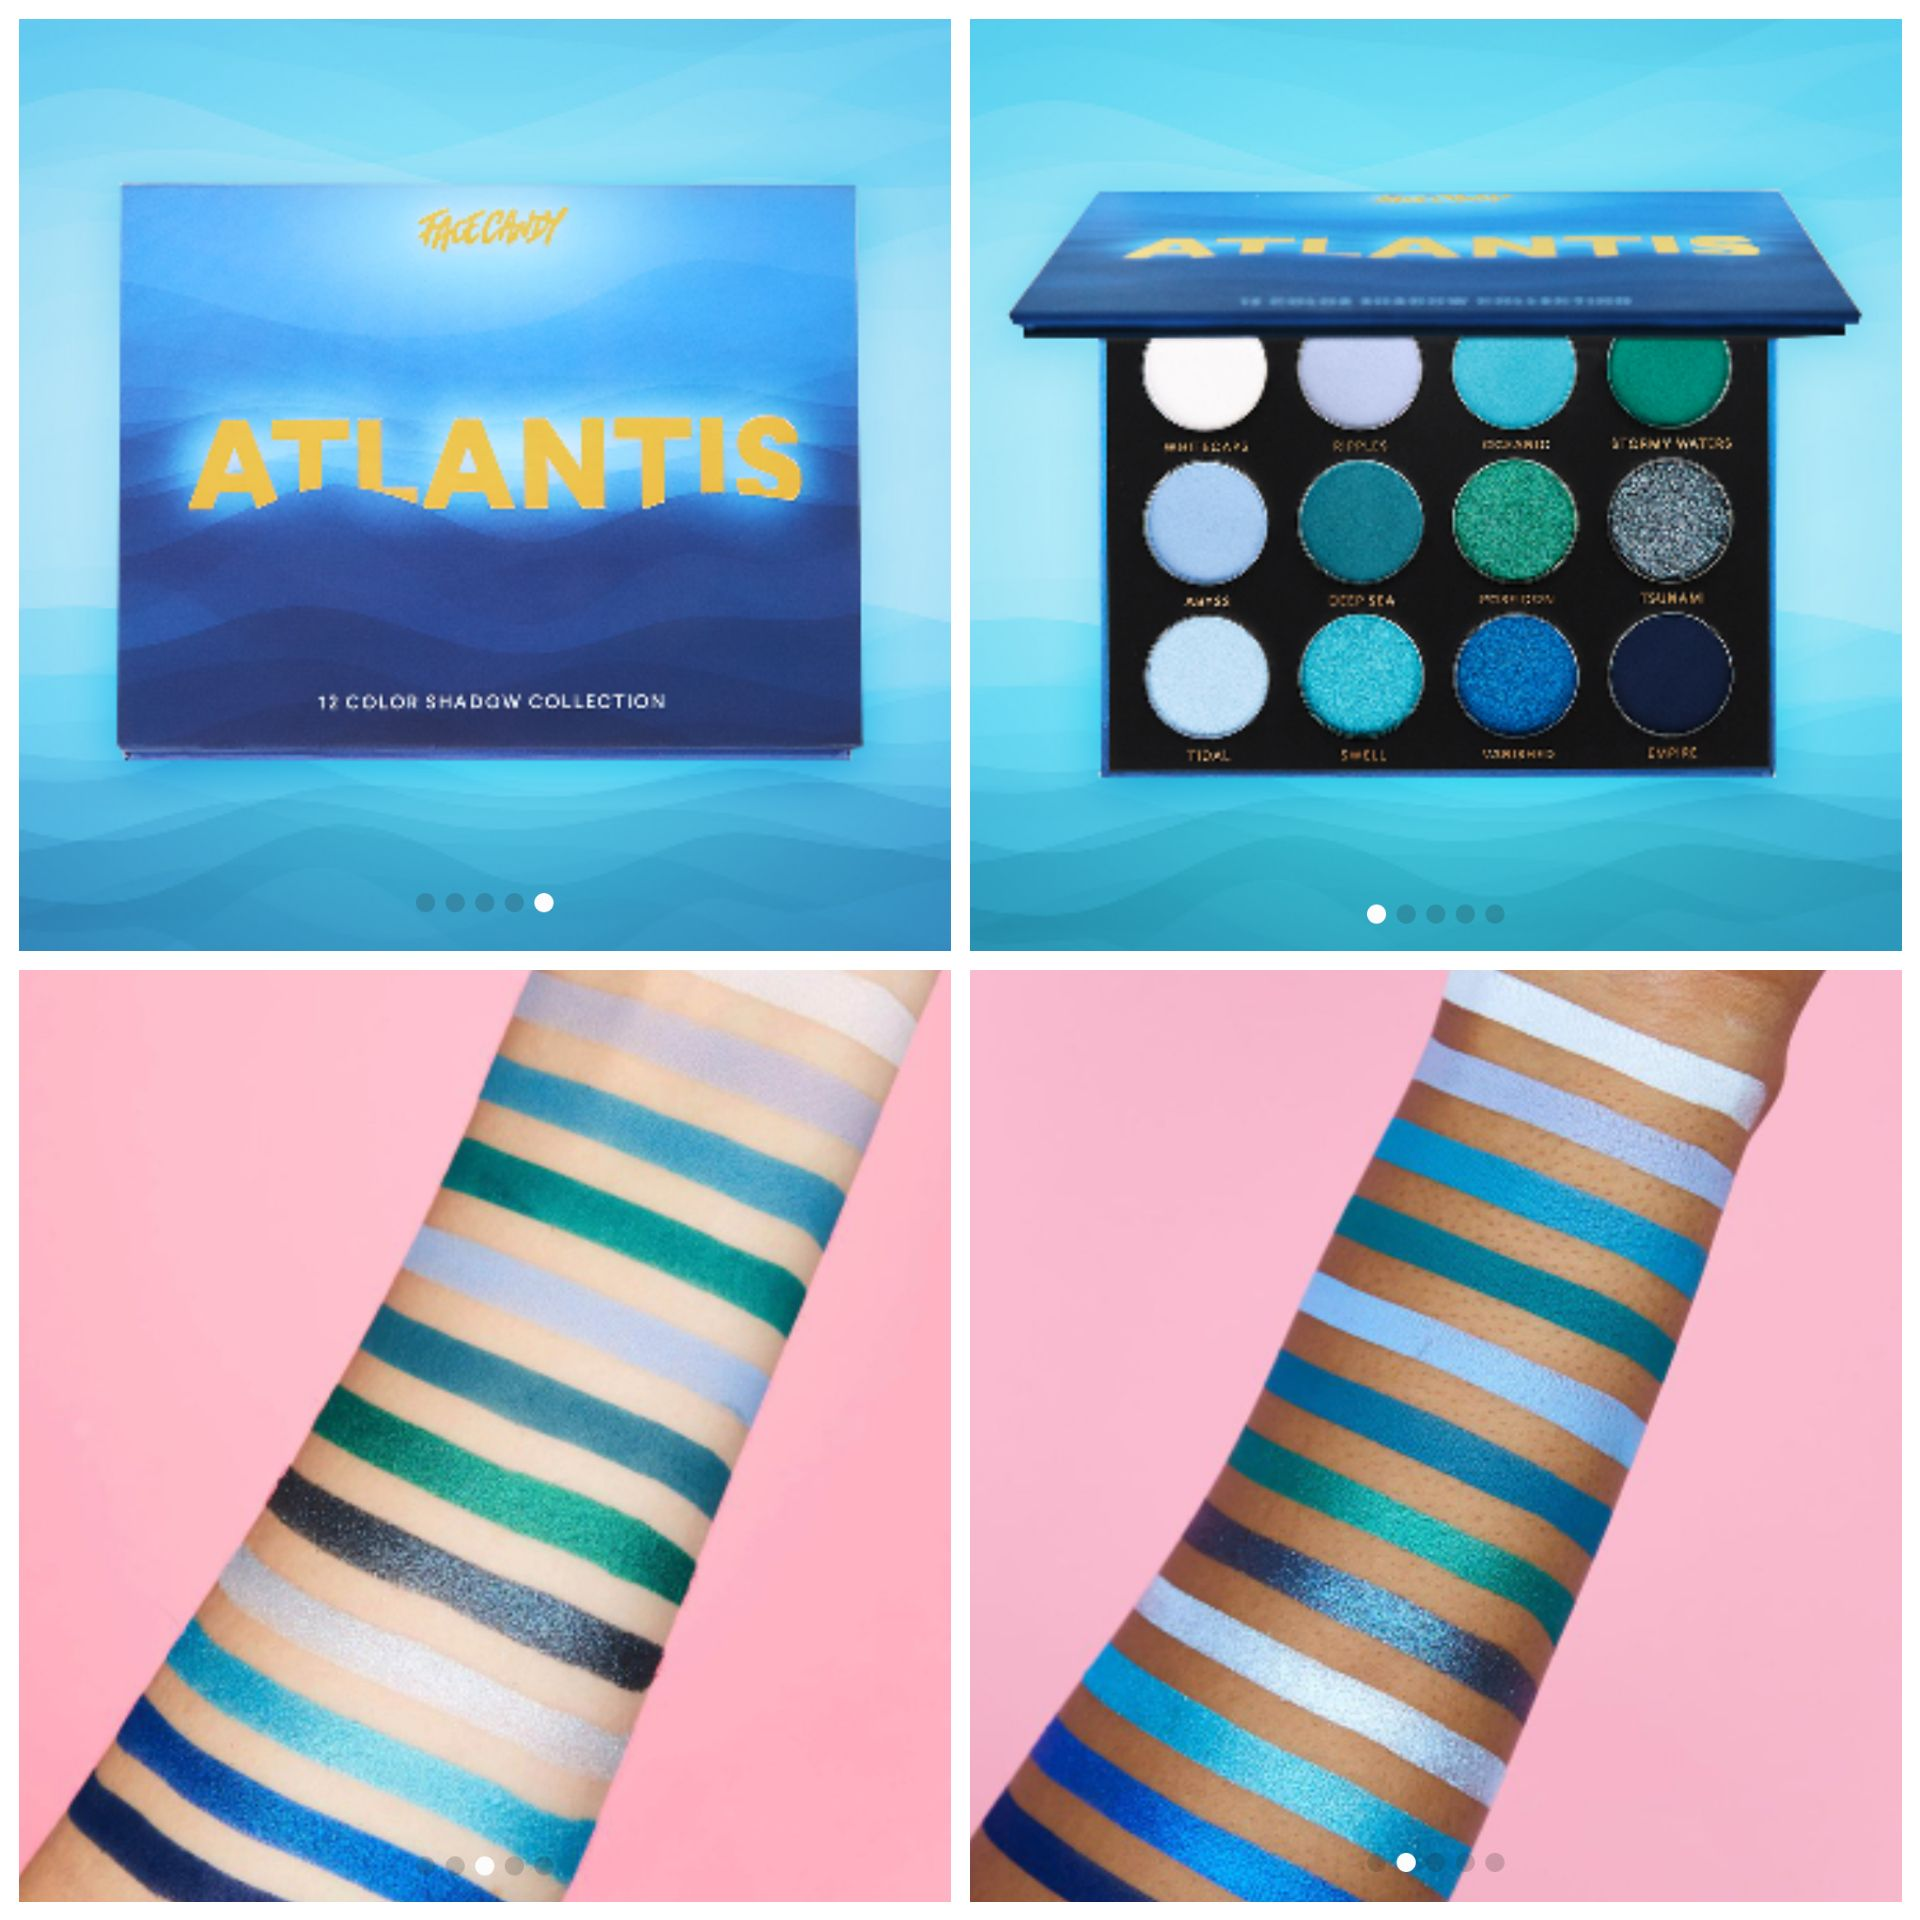 Face Candy's Atlantis Pallete is now available! Makeup